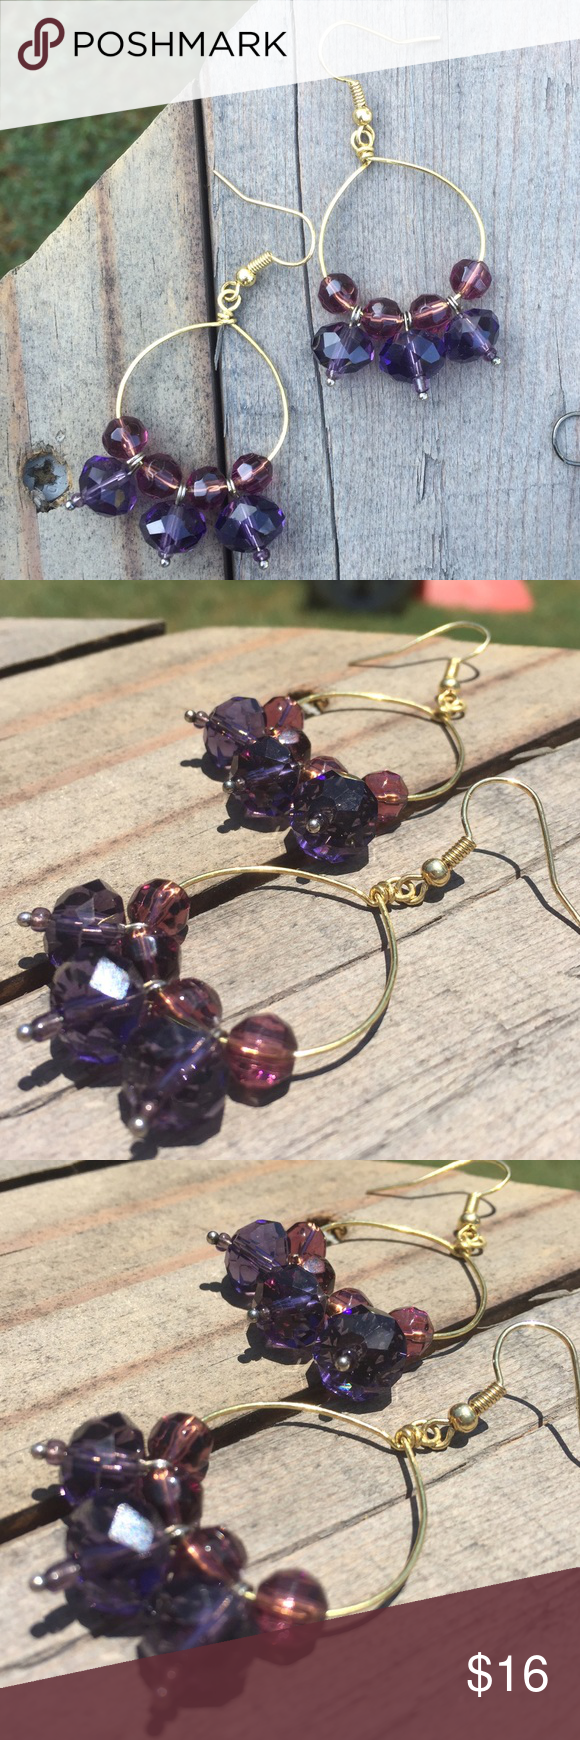 "Purple Tones on Gold Metal Statement Earrings Purple Tones on Gold Metal Statement Earrings Gorgeous faceted beads hang from gold tone metal to create a rich jewel tone statement earring.  Hangs approx 2.25"".  Such gorgeous colors!  Designed and handmade by a graduate of Savannah College of Art and Design.  Brand new!  Reasonable offers are welcome and will definitely be considered!  Take advantage of bundles to get a discount and to maximize shipping!  Handmade with love in the USA. Jewelry…"